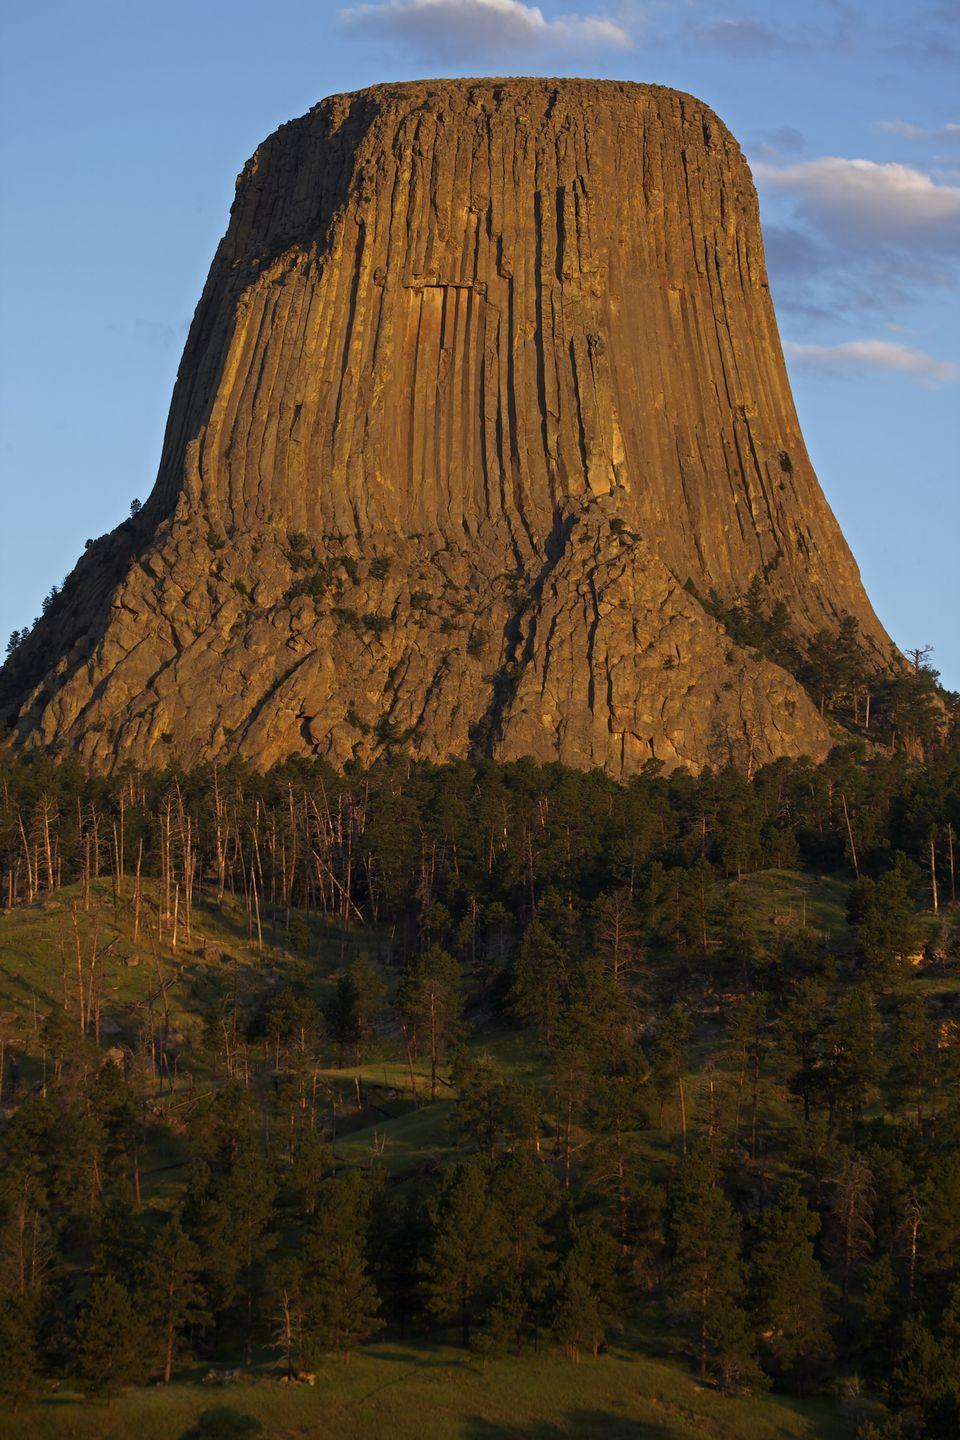 "<p>The ""Best Little Town"" in the state has a population of 400 who enjoy incredible views of <a href=""http://www.blackhillsbadlands.com/cities-towns/hulett-wyoming"" rel=""nofollow noopener"" target=""_blank"" data-ylk=""slk:Devils Tower"" class=""link rapid-noclick-resp"">Devils Tower</a> (America's first National Monument). However, that populations balloons to over 100,000, with bikers en route to annual Sturgis Motorcycle Rally in South Dakota. Whether you decide to explore the area on a motorcycle or horseback, you'll definitely want to make time on your schedule for a meal at the Ponderosa Cafe, a place that fits the Old West vibe of the town. </p>"